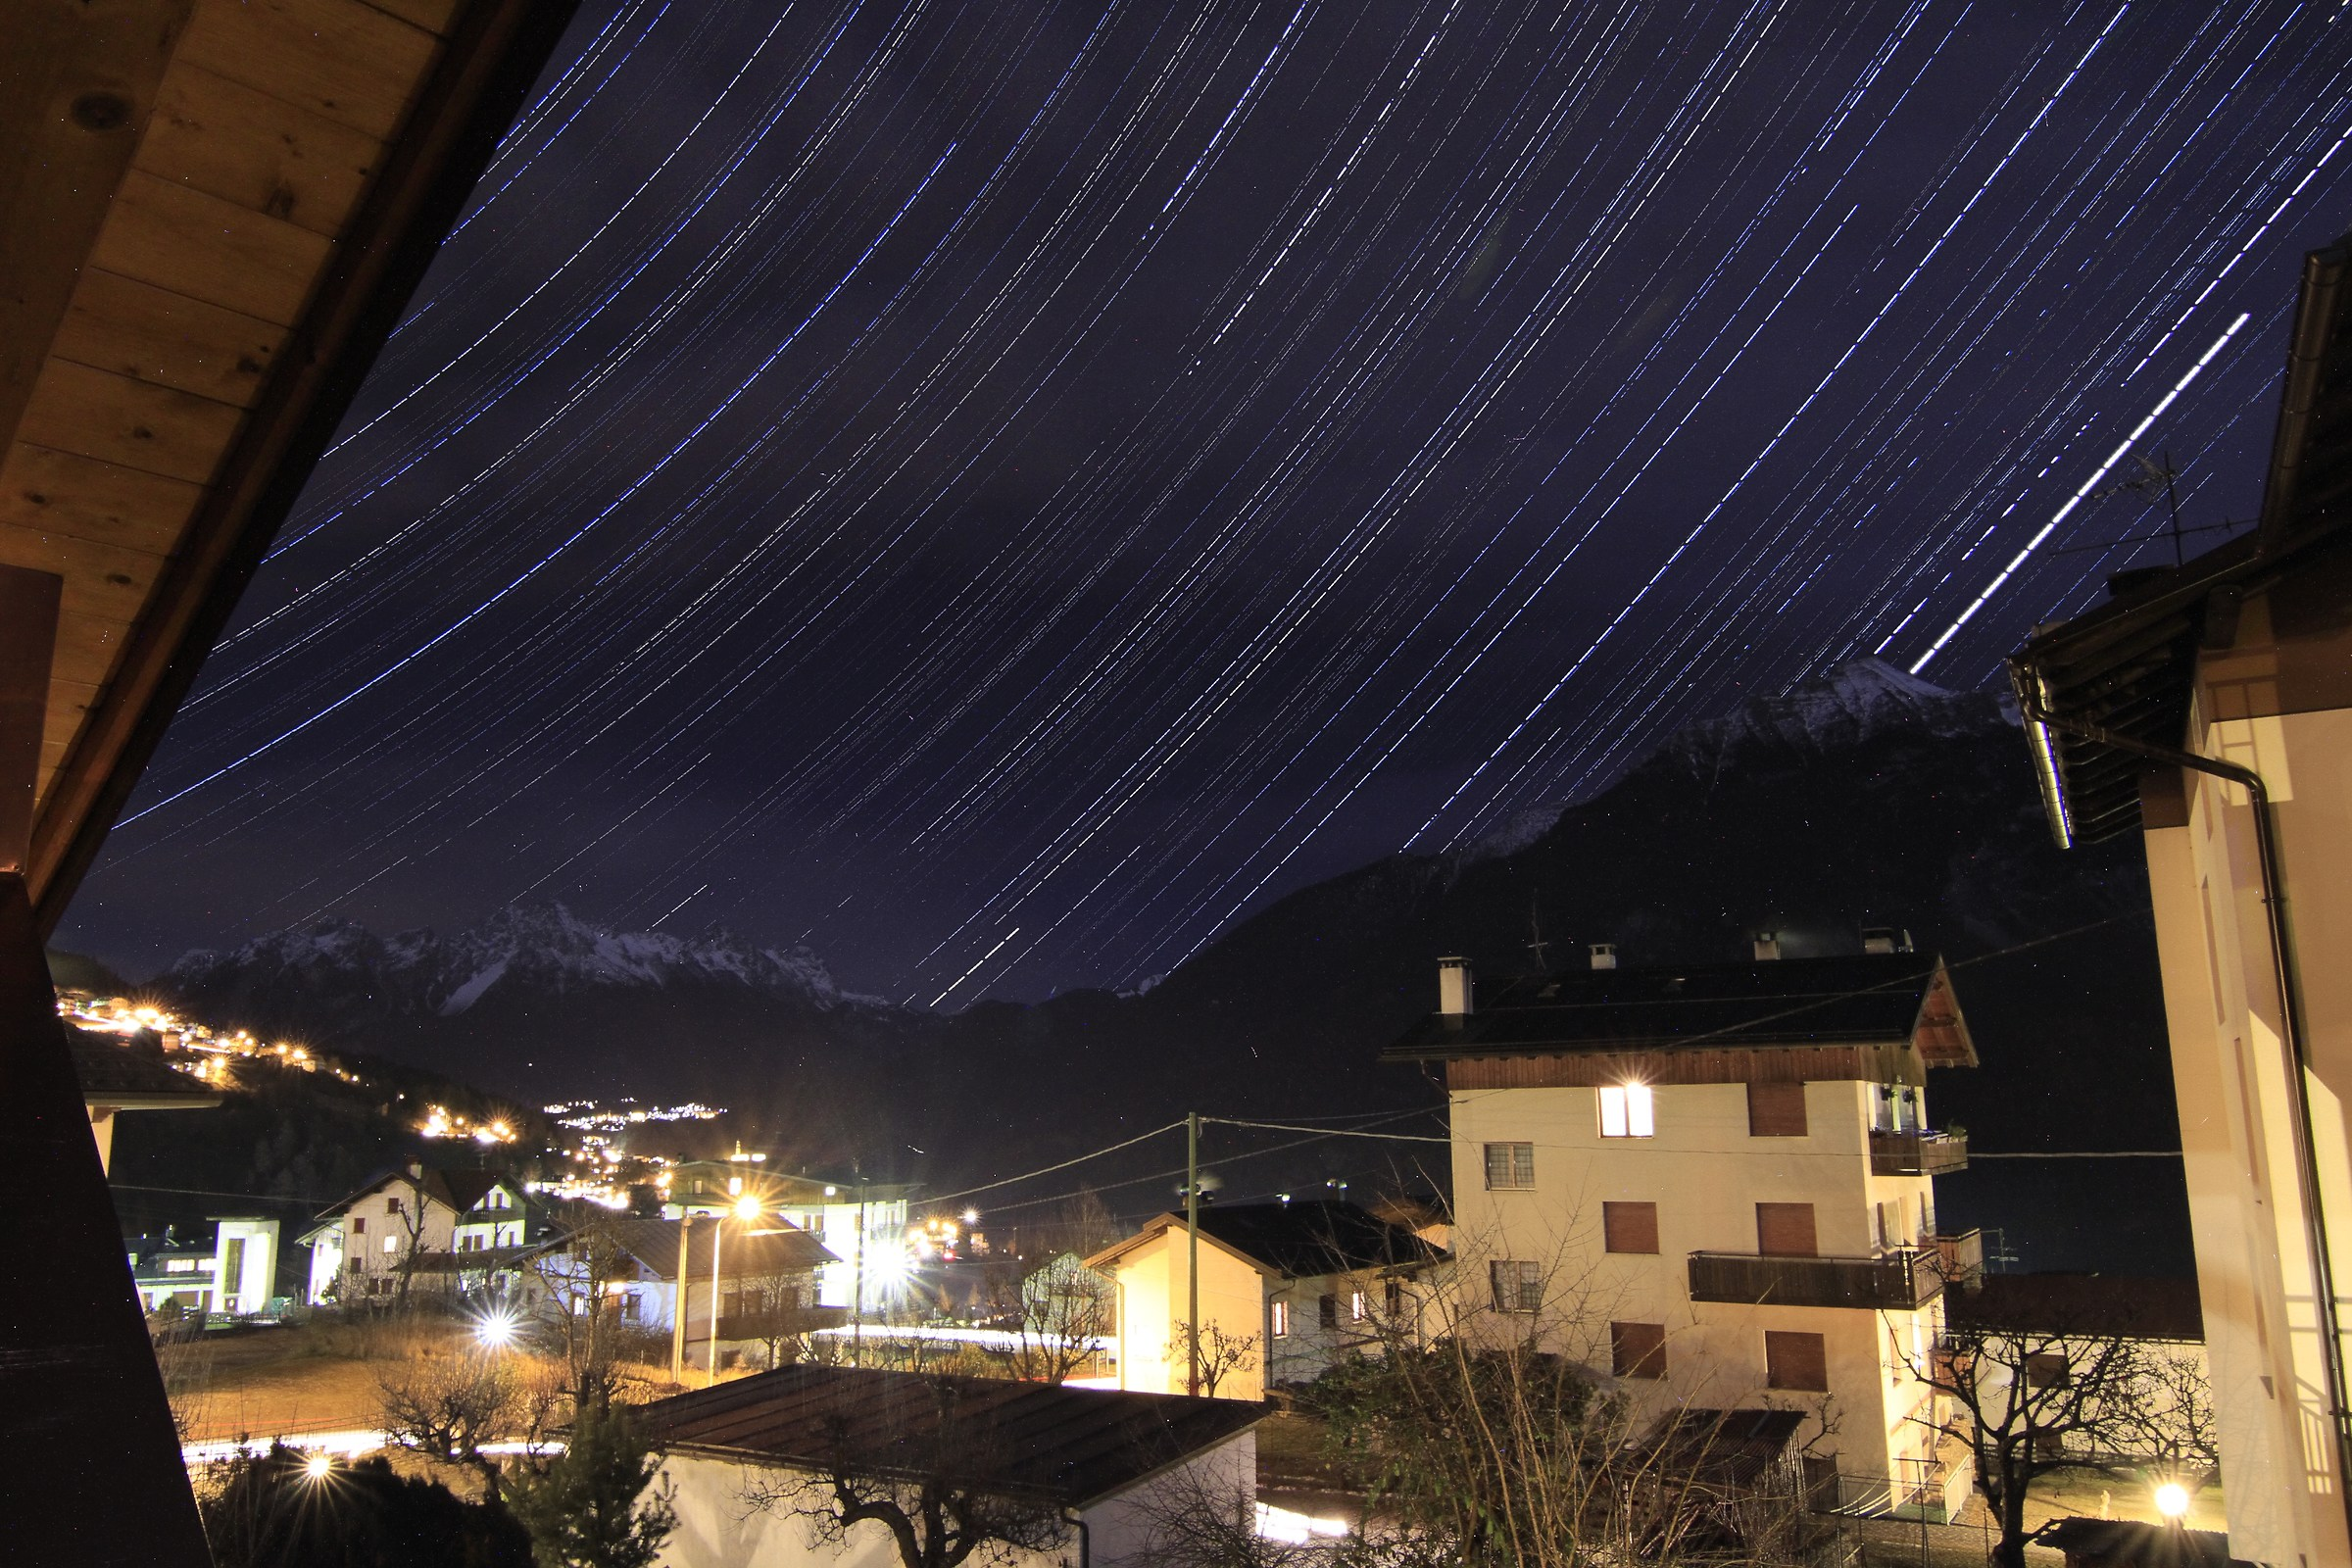 second test Startrail from home...